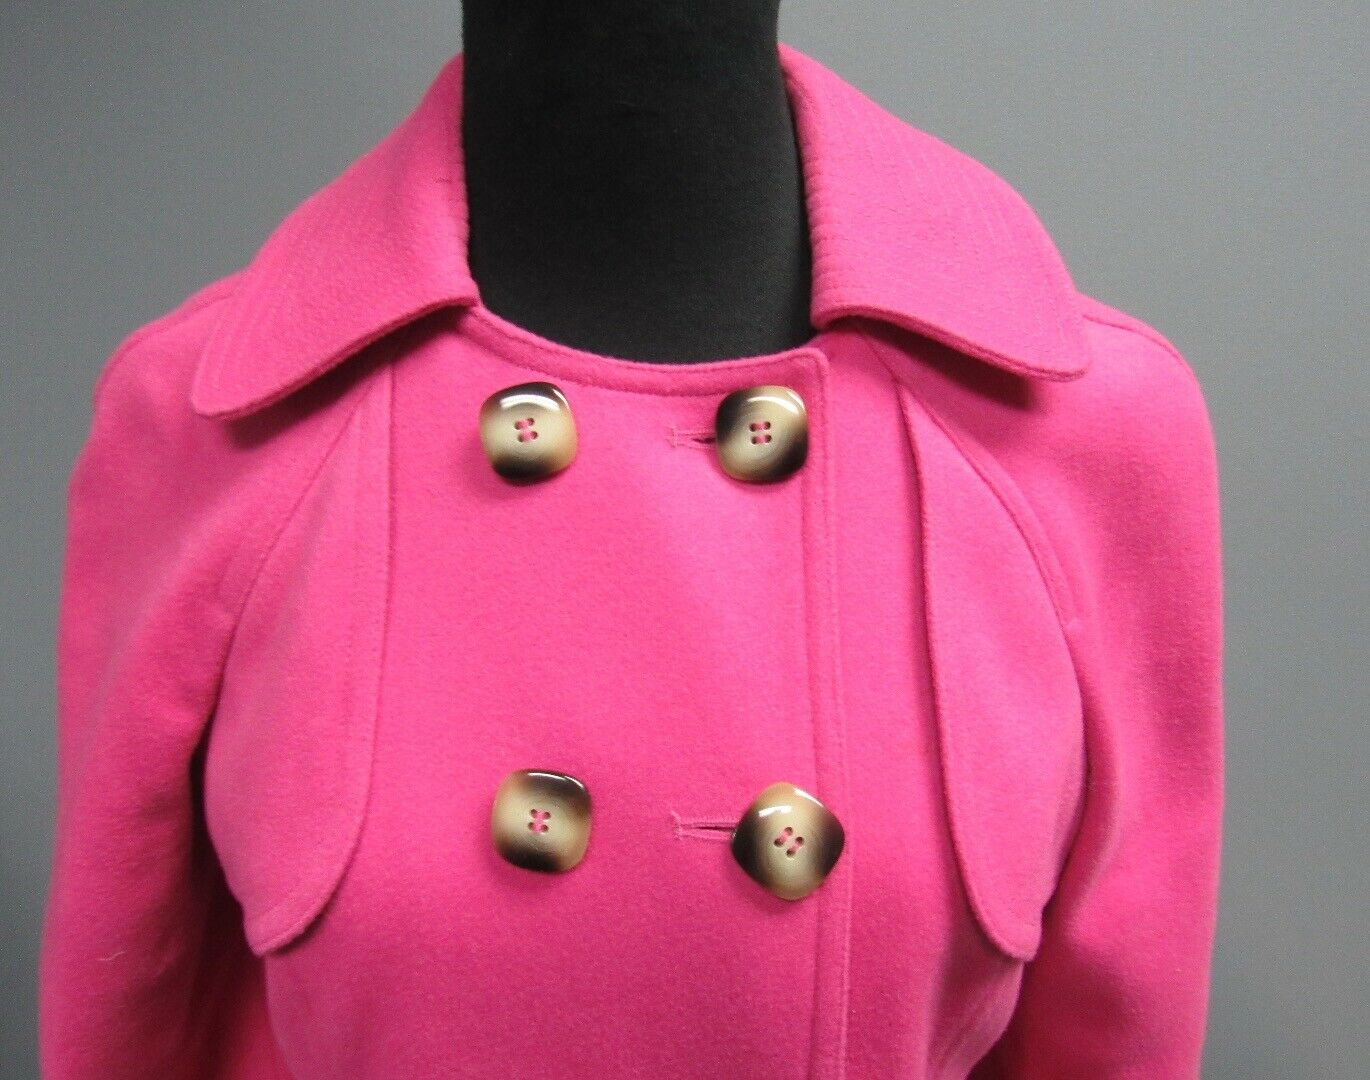 TIBI Pink Wool Blend Lined Lined Lined Collared Button Front Midweight Blazer Sz 2 GG2925 10416c